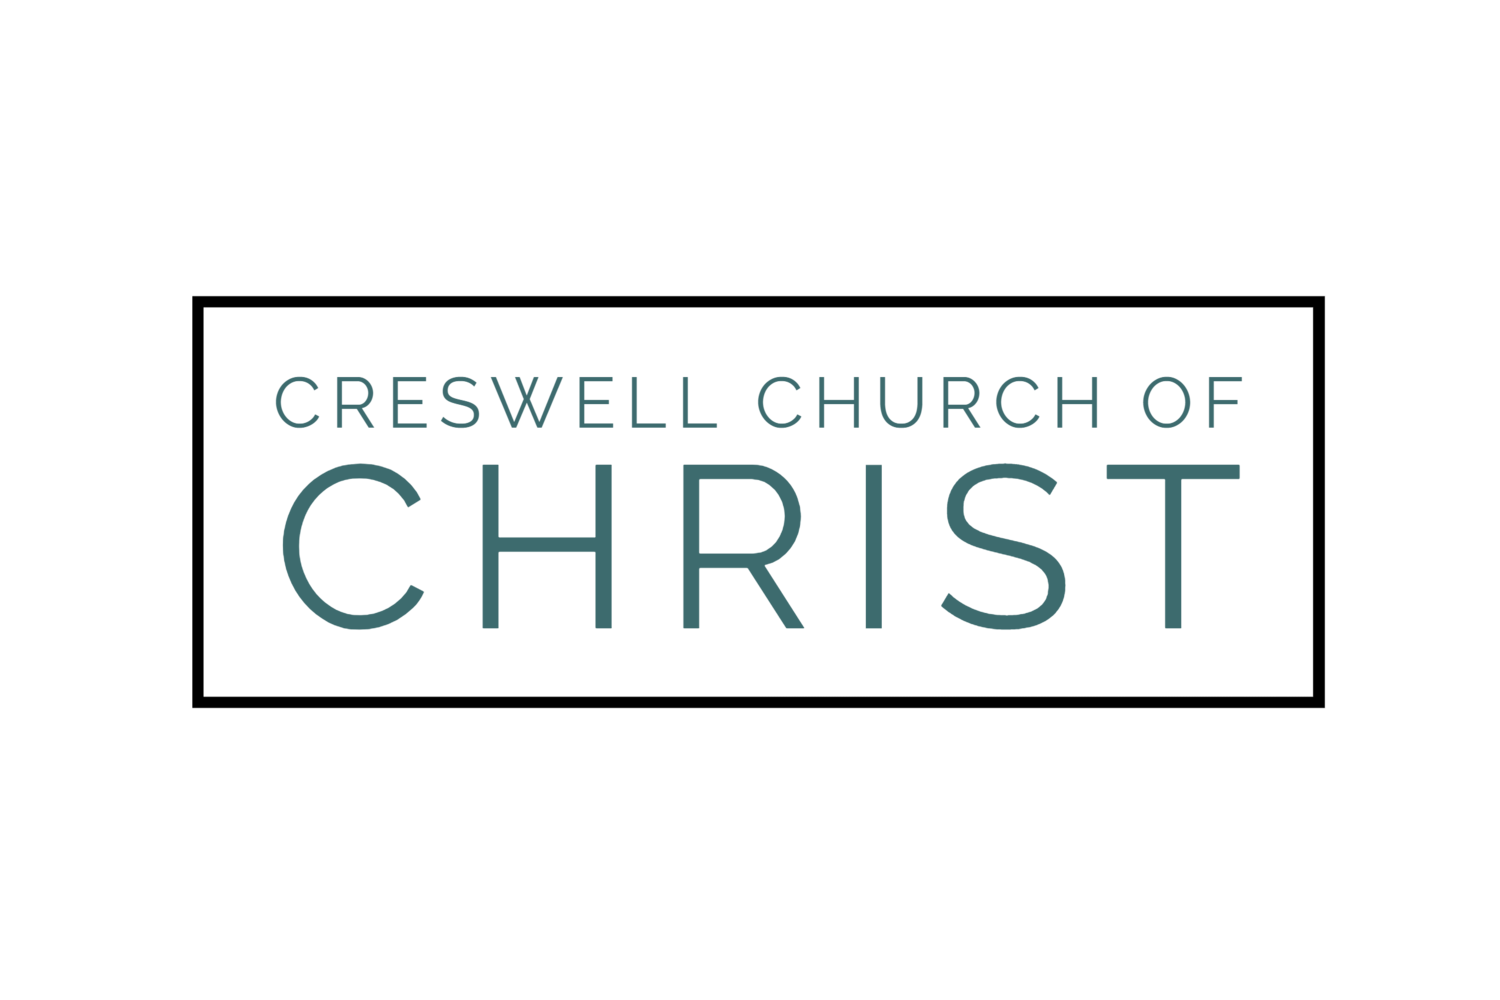 Creswell Church of Christ